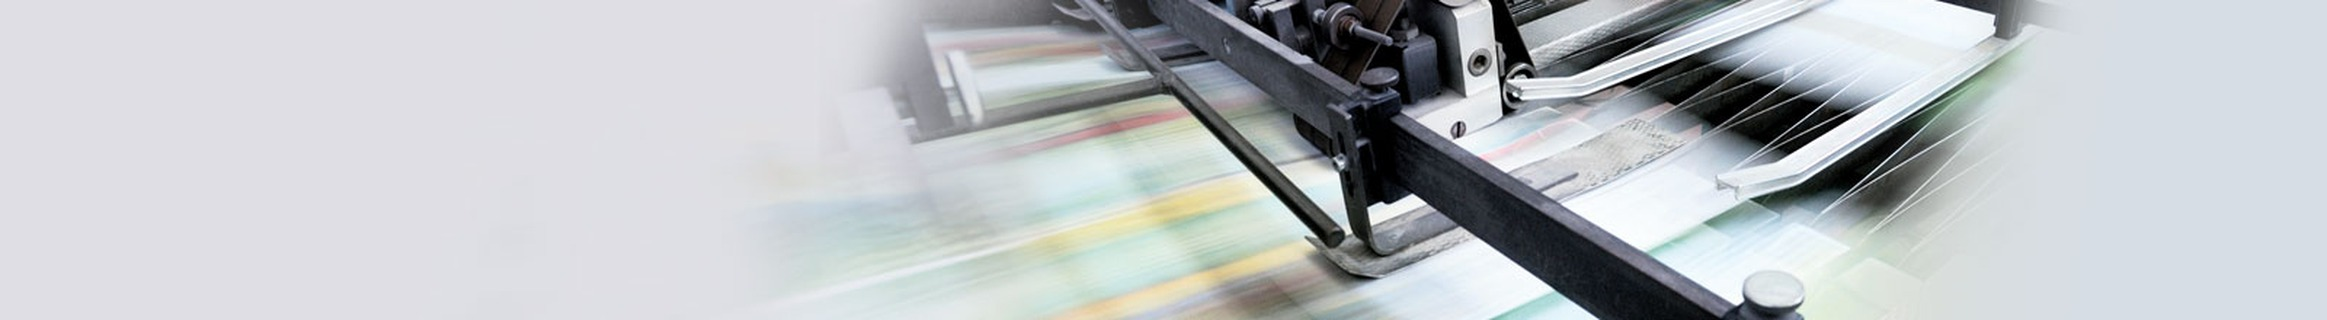 Machine vision - Print & packaging